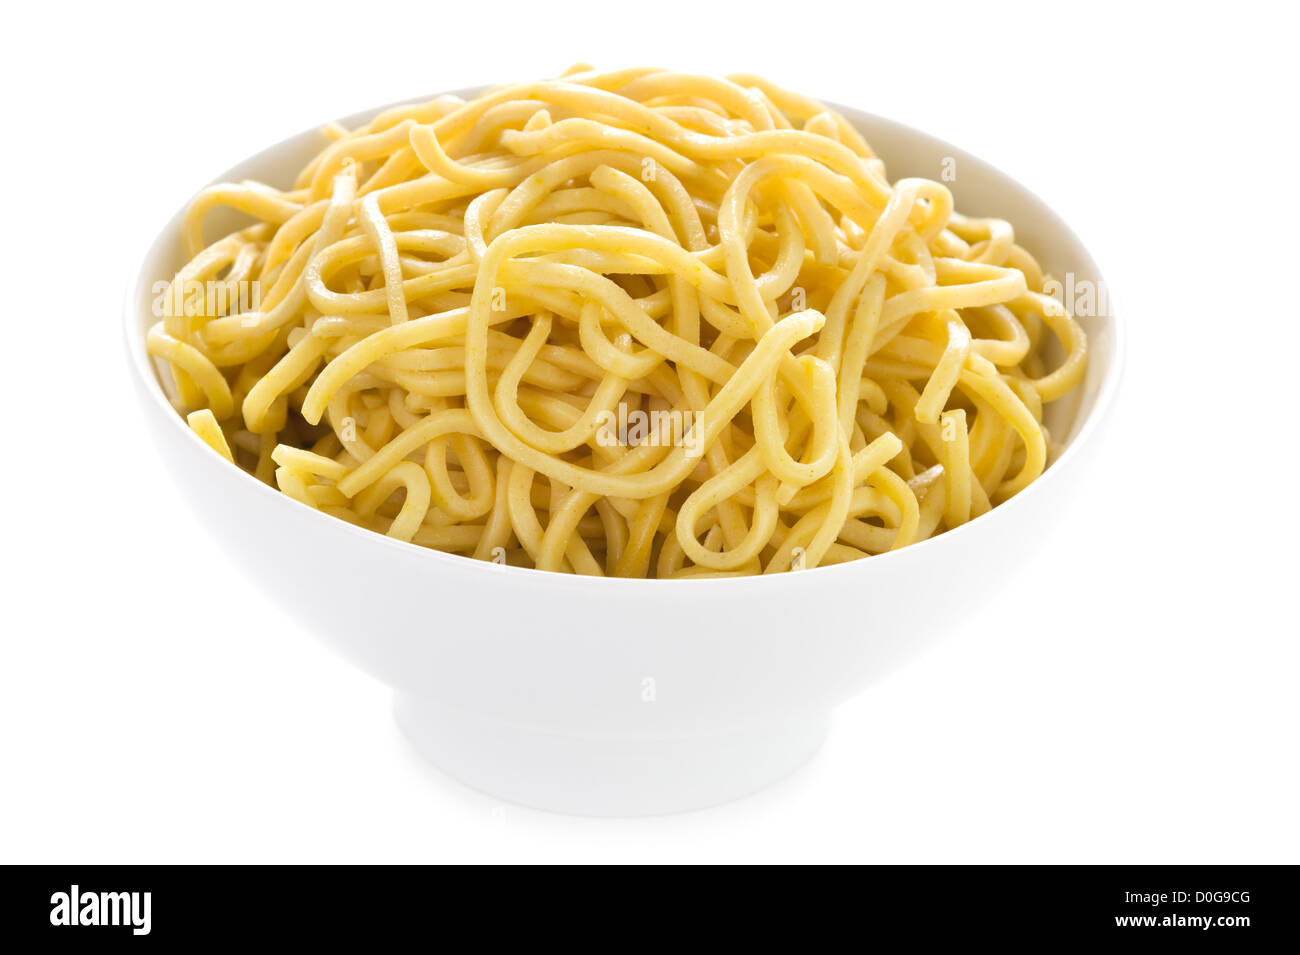 plain cooked egg noodles in a bowl - Stock Image